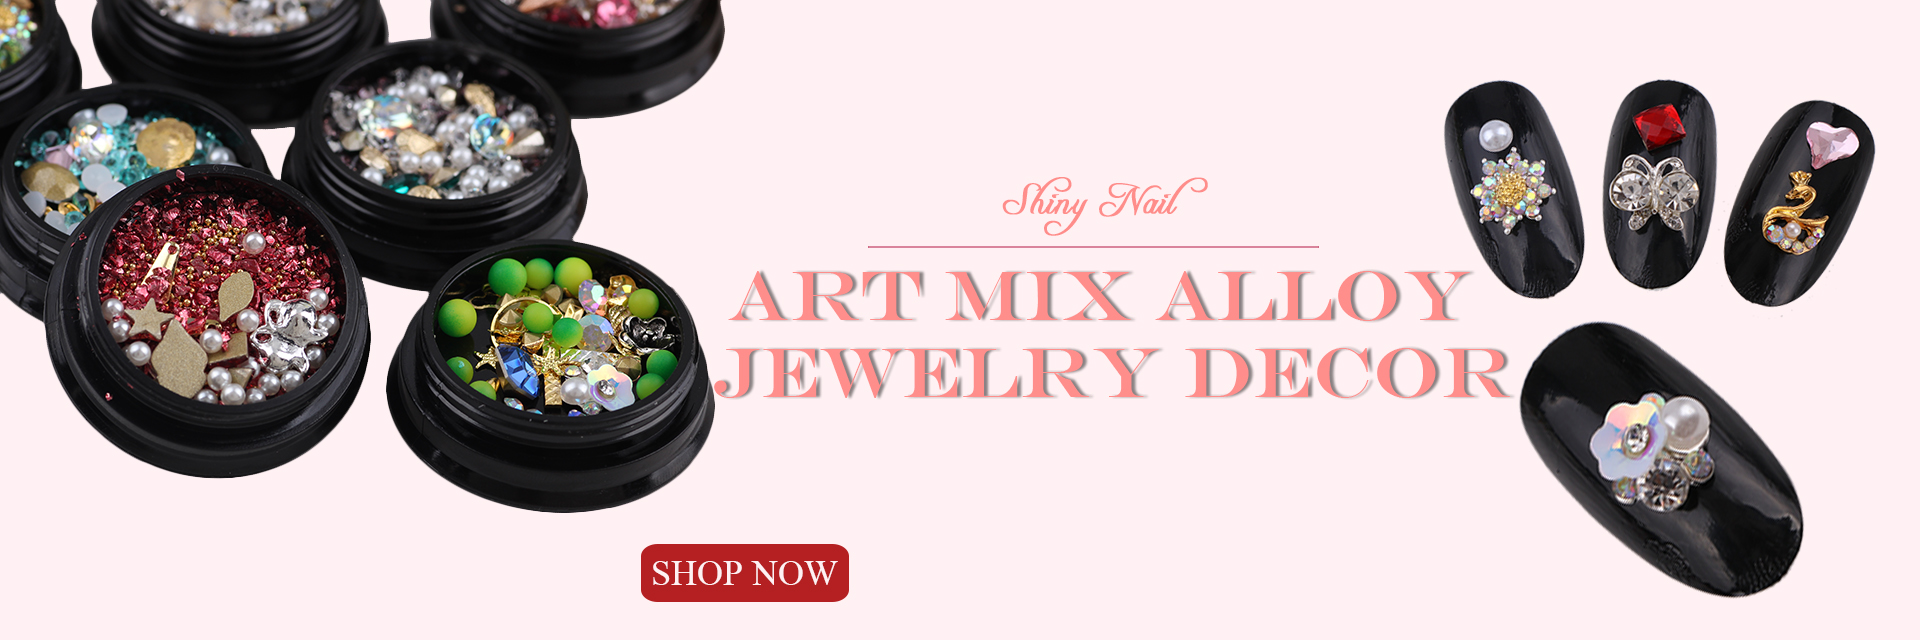 Amy Nail Art Store - Small Orders Online Store, Hot Selling and more ...